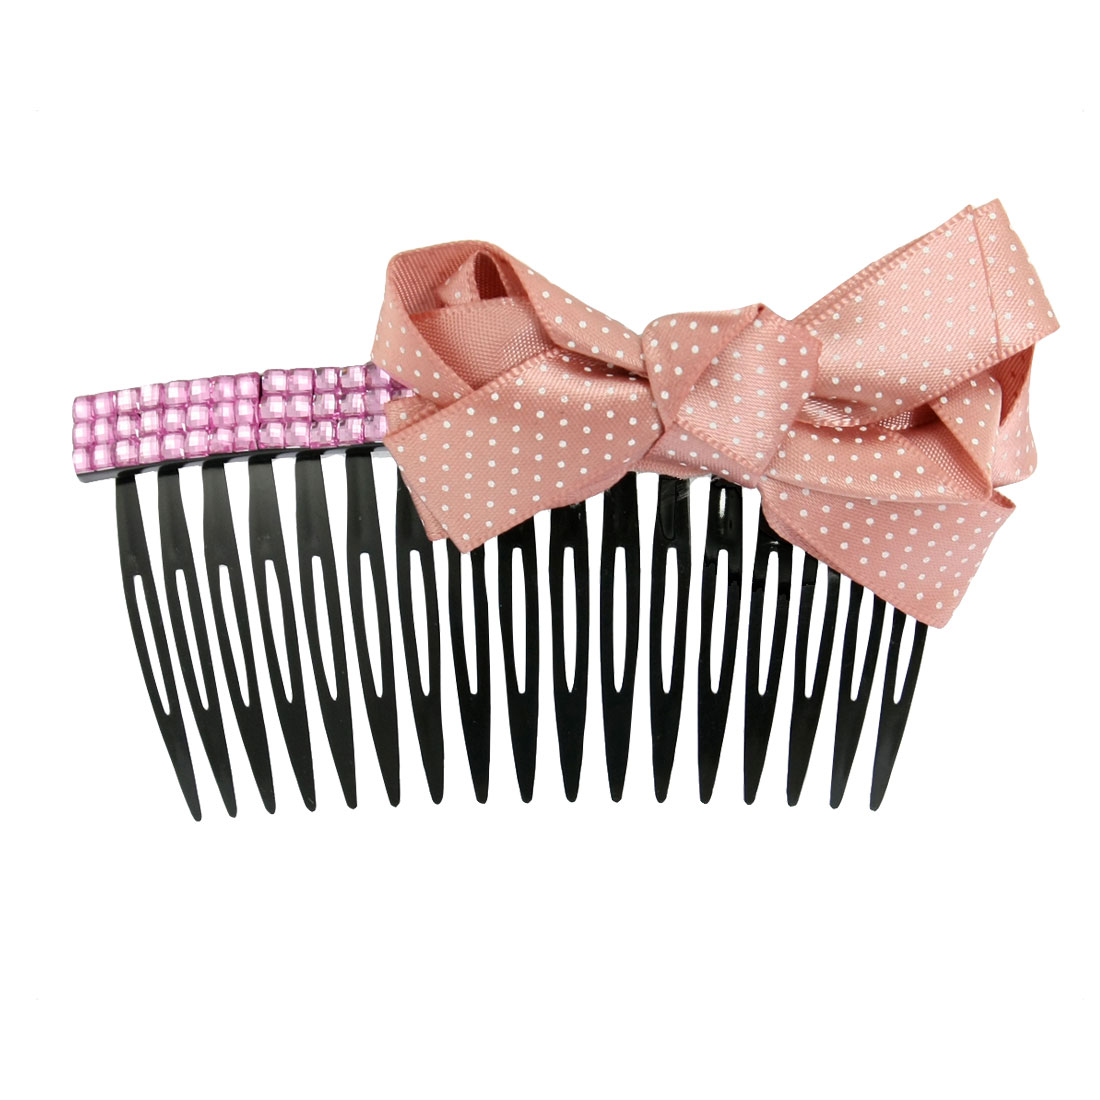 Hairdressing Carnation Pink Bow Tie Rhinestone Accent Plastic Hair Comb 4""